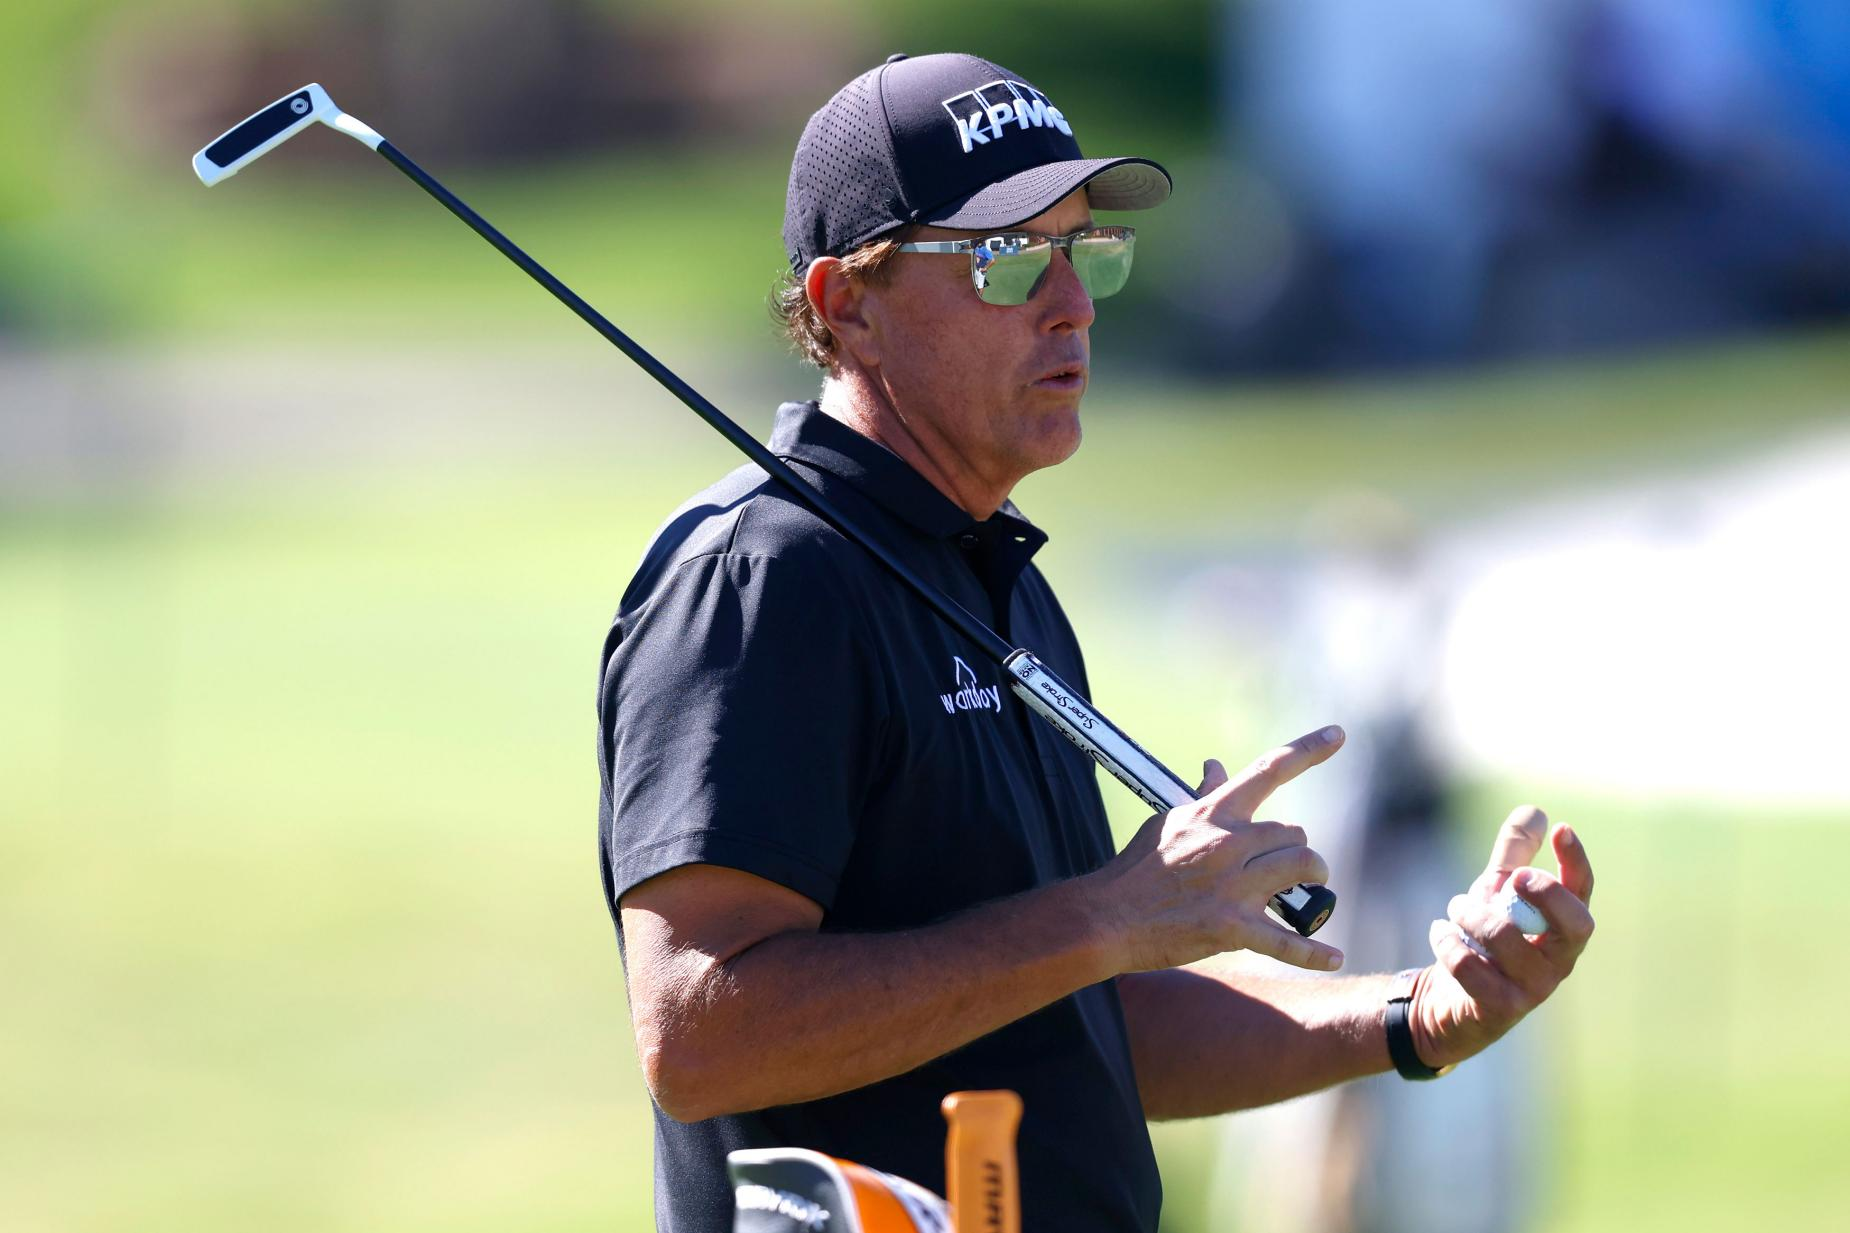 Phil Mickelson leidt Travelers Championship - Blog